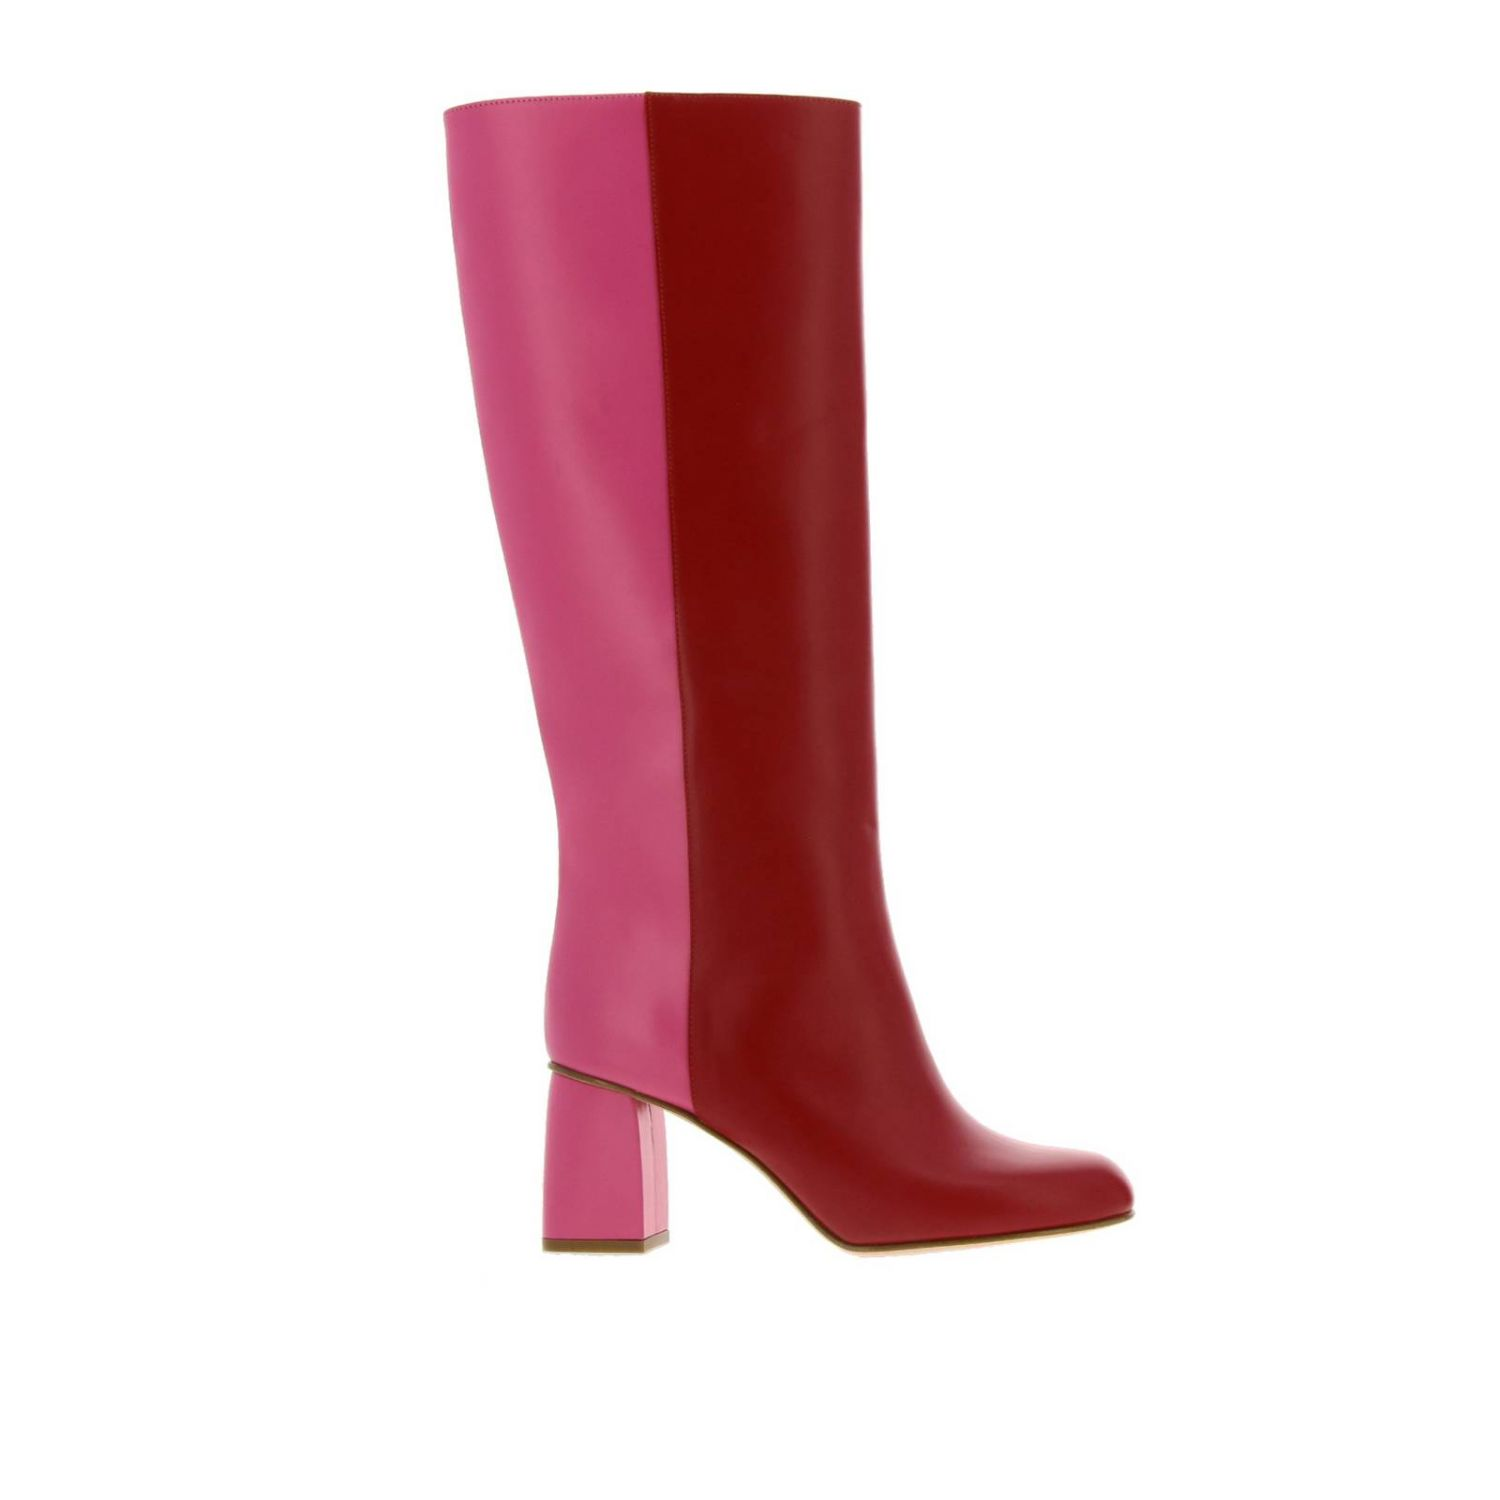 Boots women Red(v) red 1